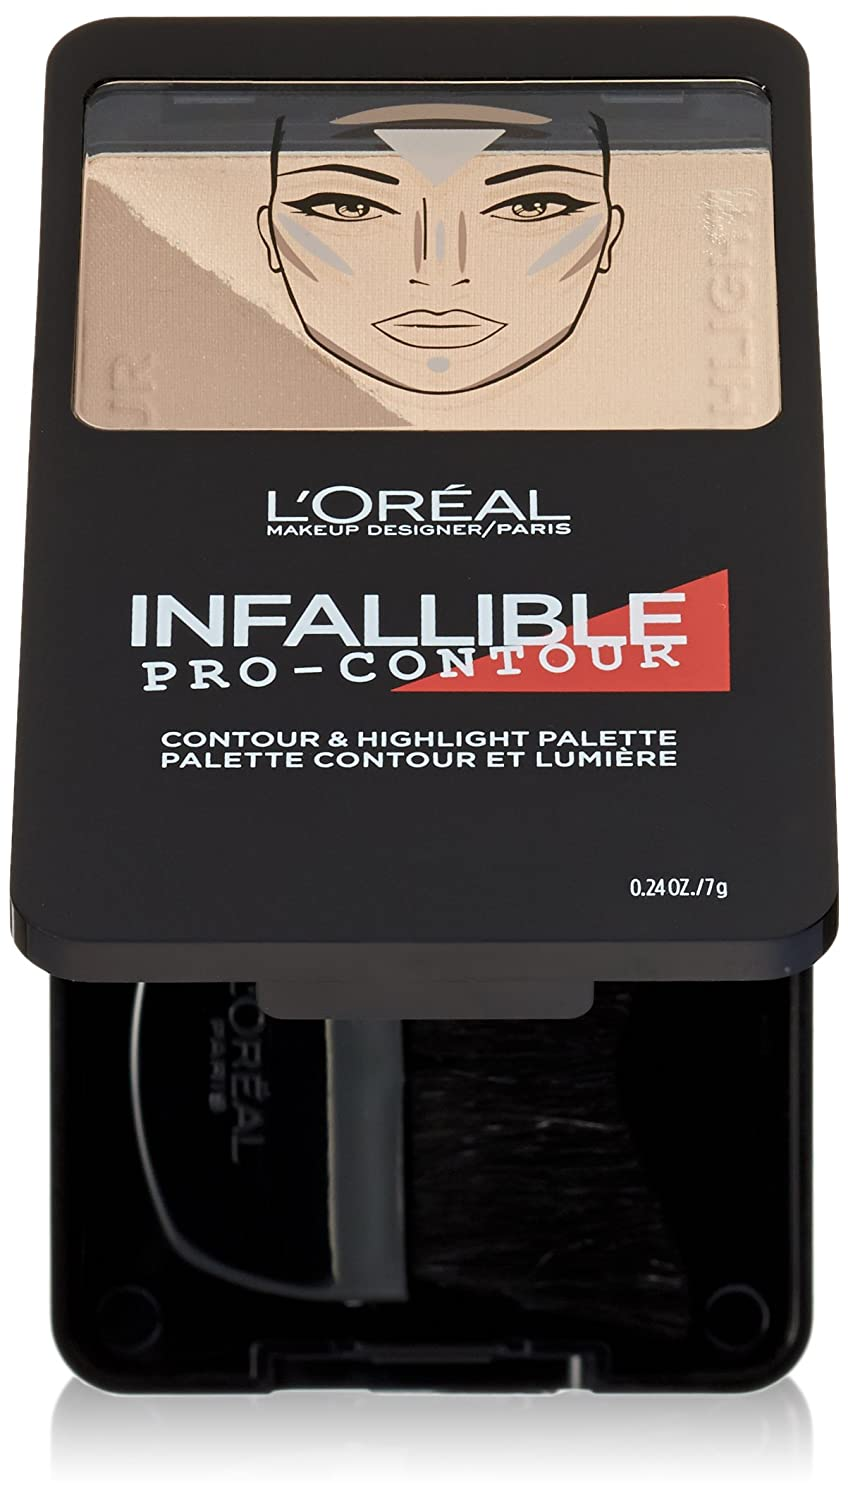 L'Oréal Paris Infallible Pro Contour Palette, Light/Clair, 0.24 oz.